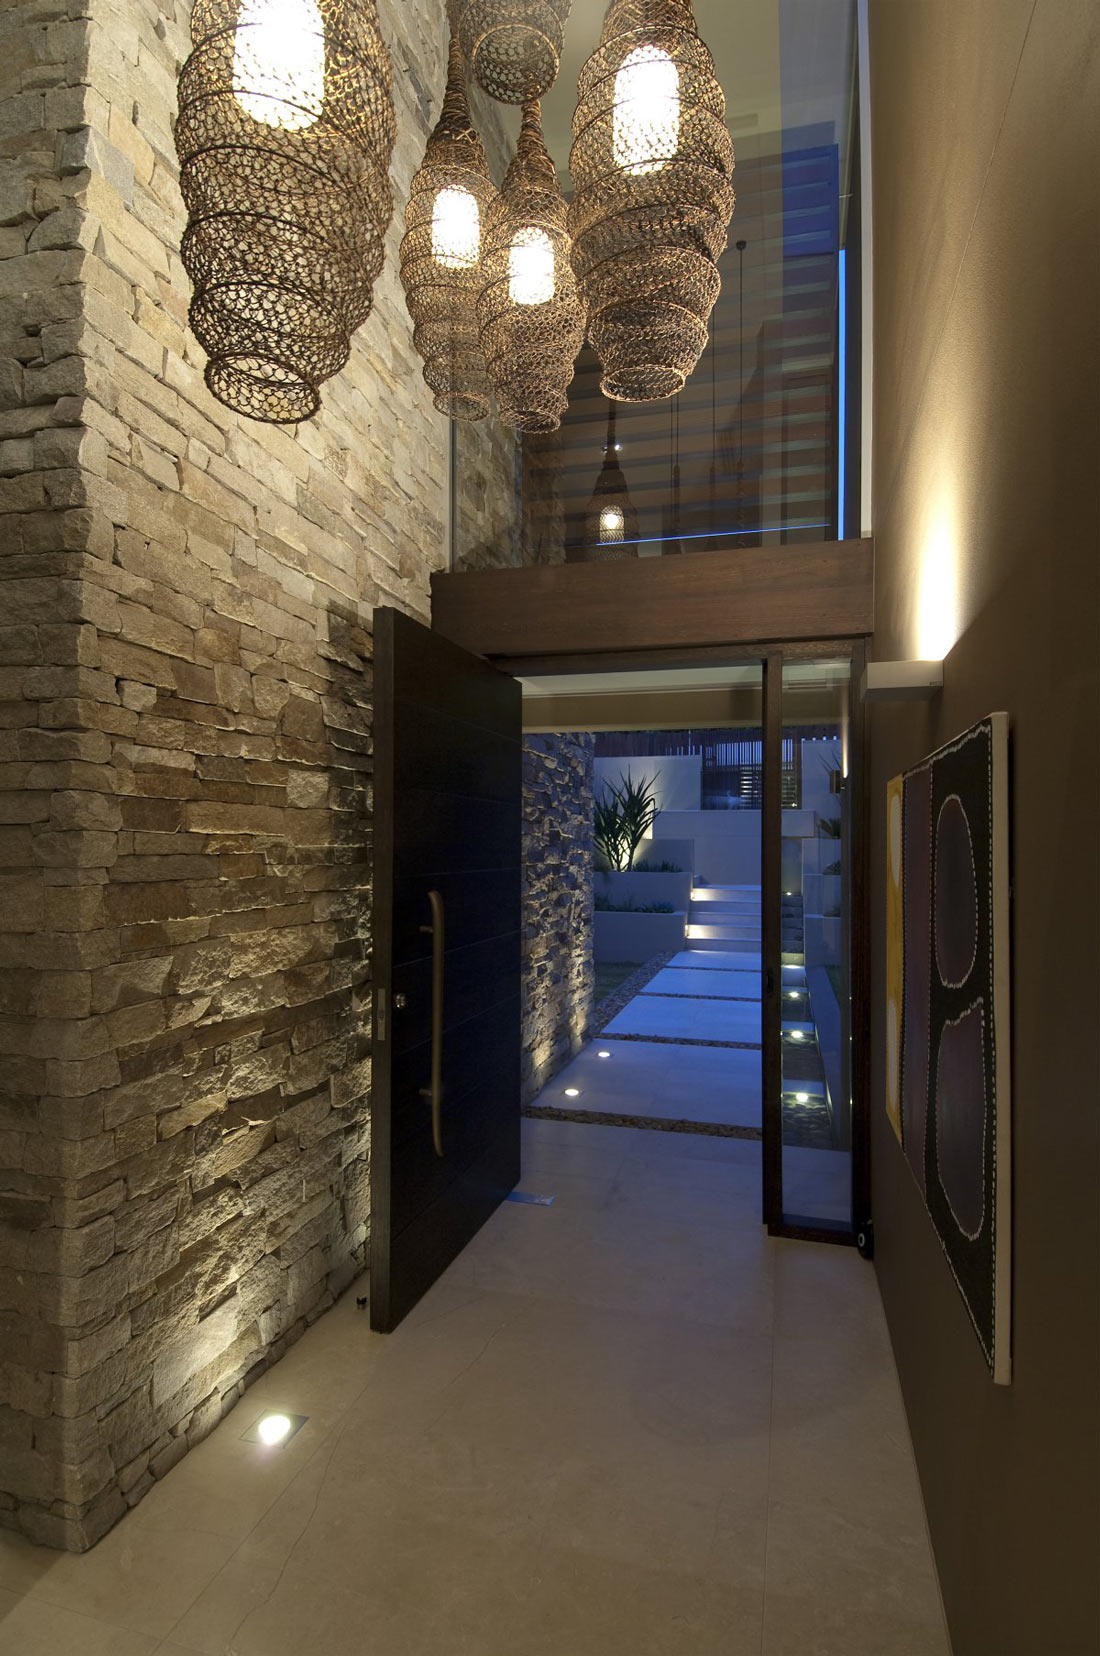 Entrance Hall, Stone Wall, Lighting, Waterfront Home in Vaucluse, Sydney